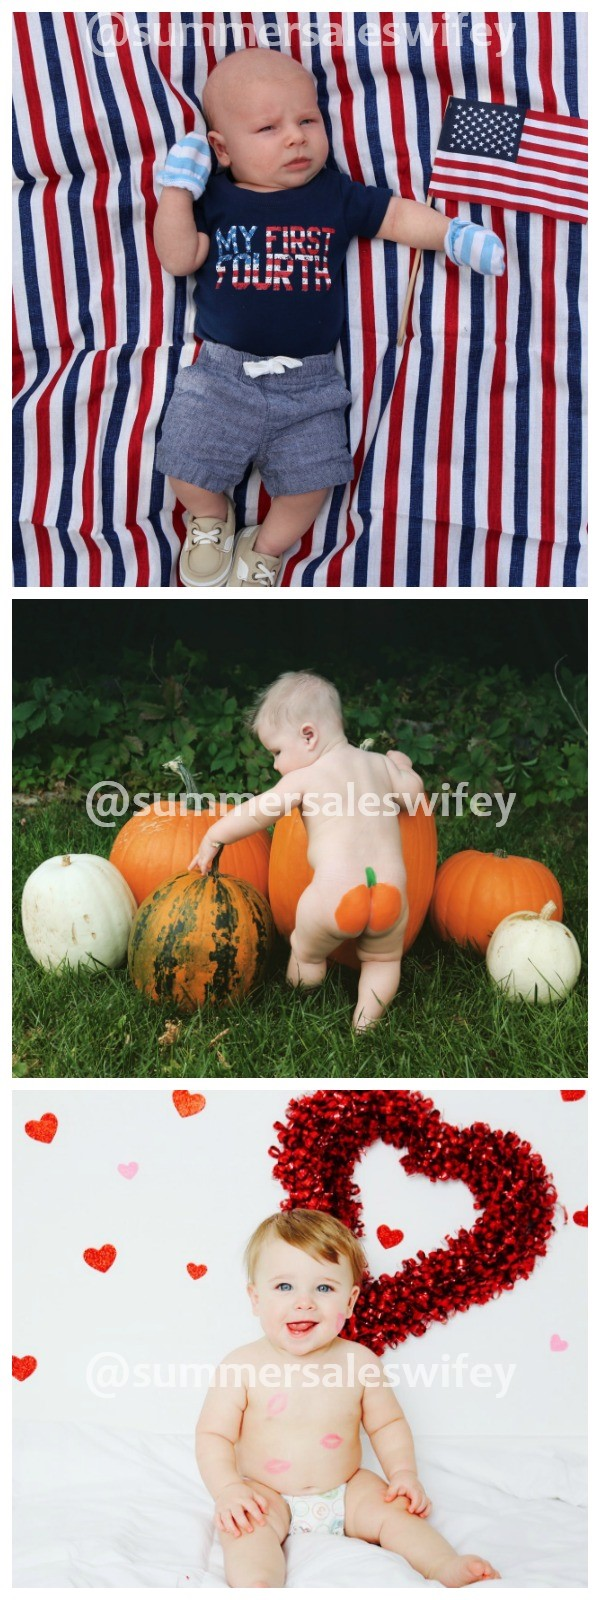 Creative monthly baby photo ideas for holidays.